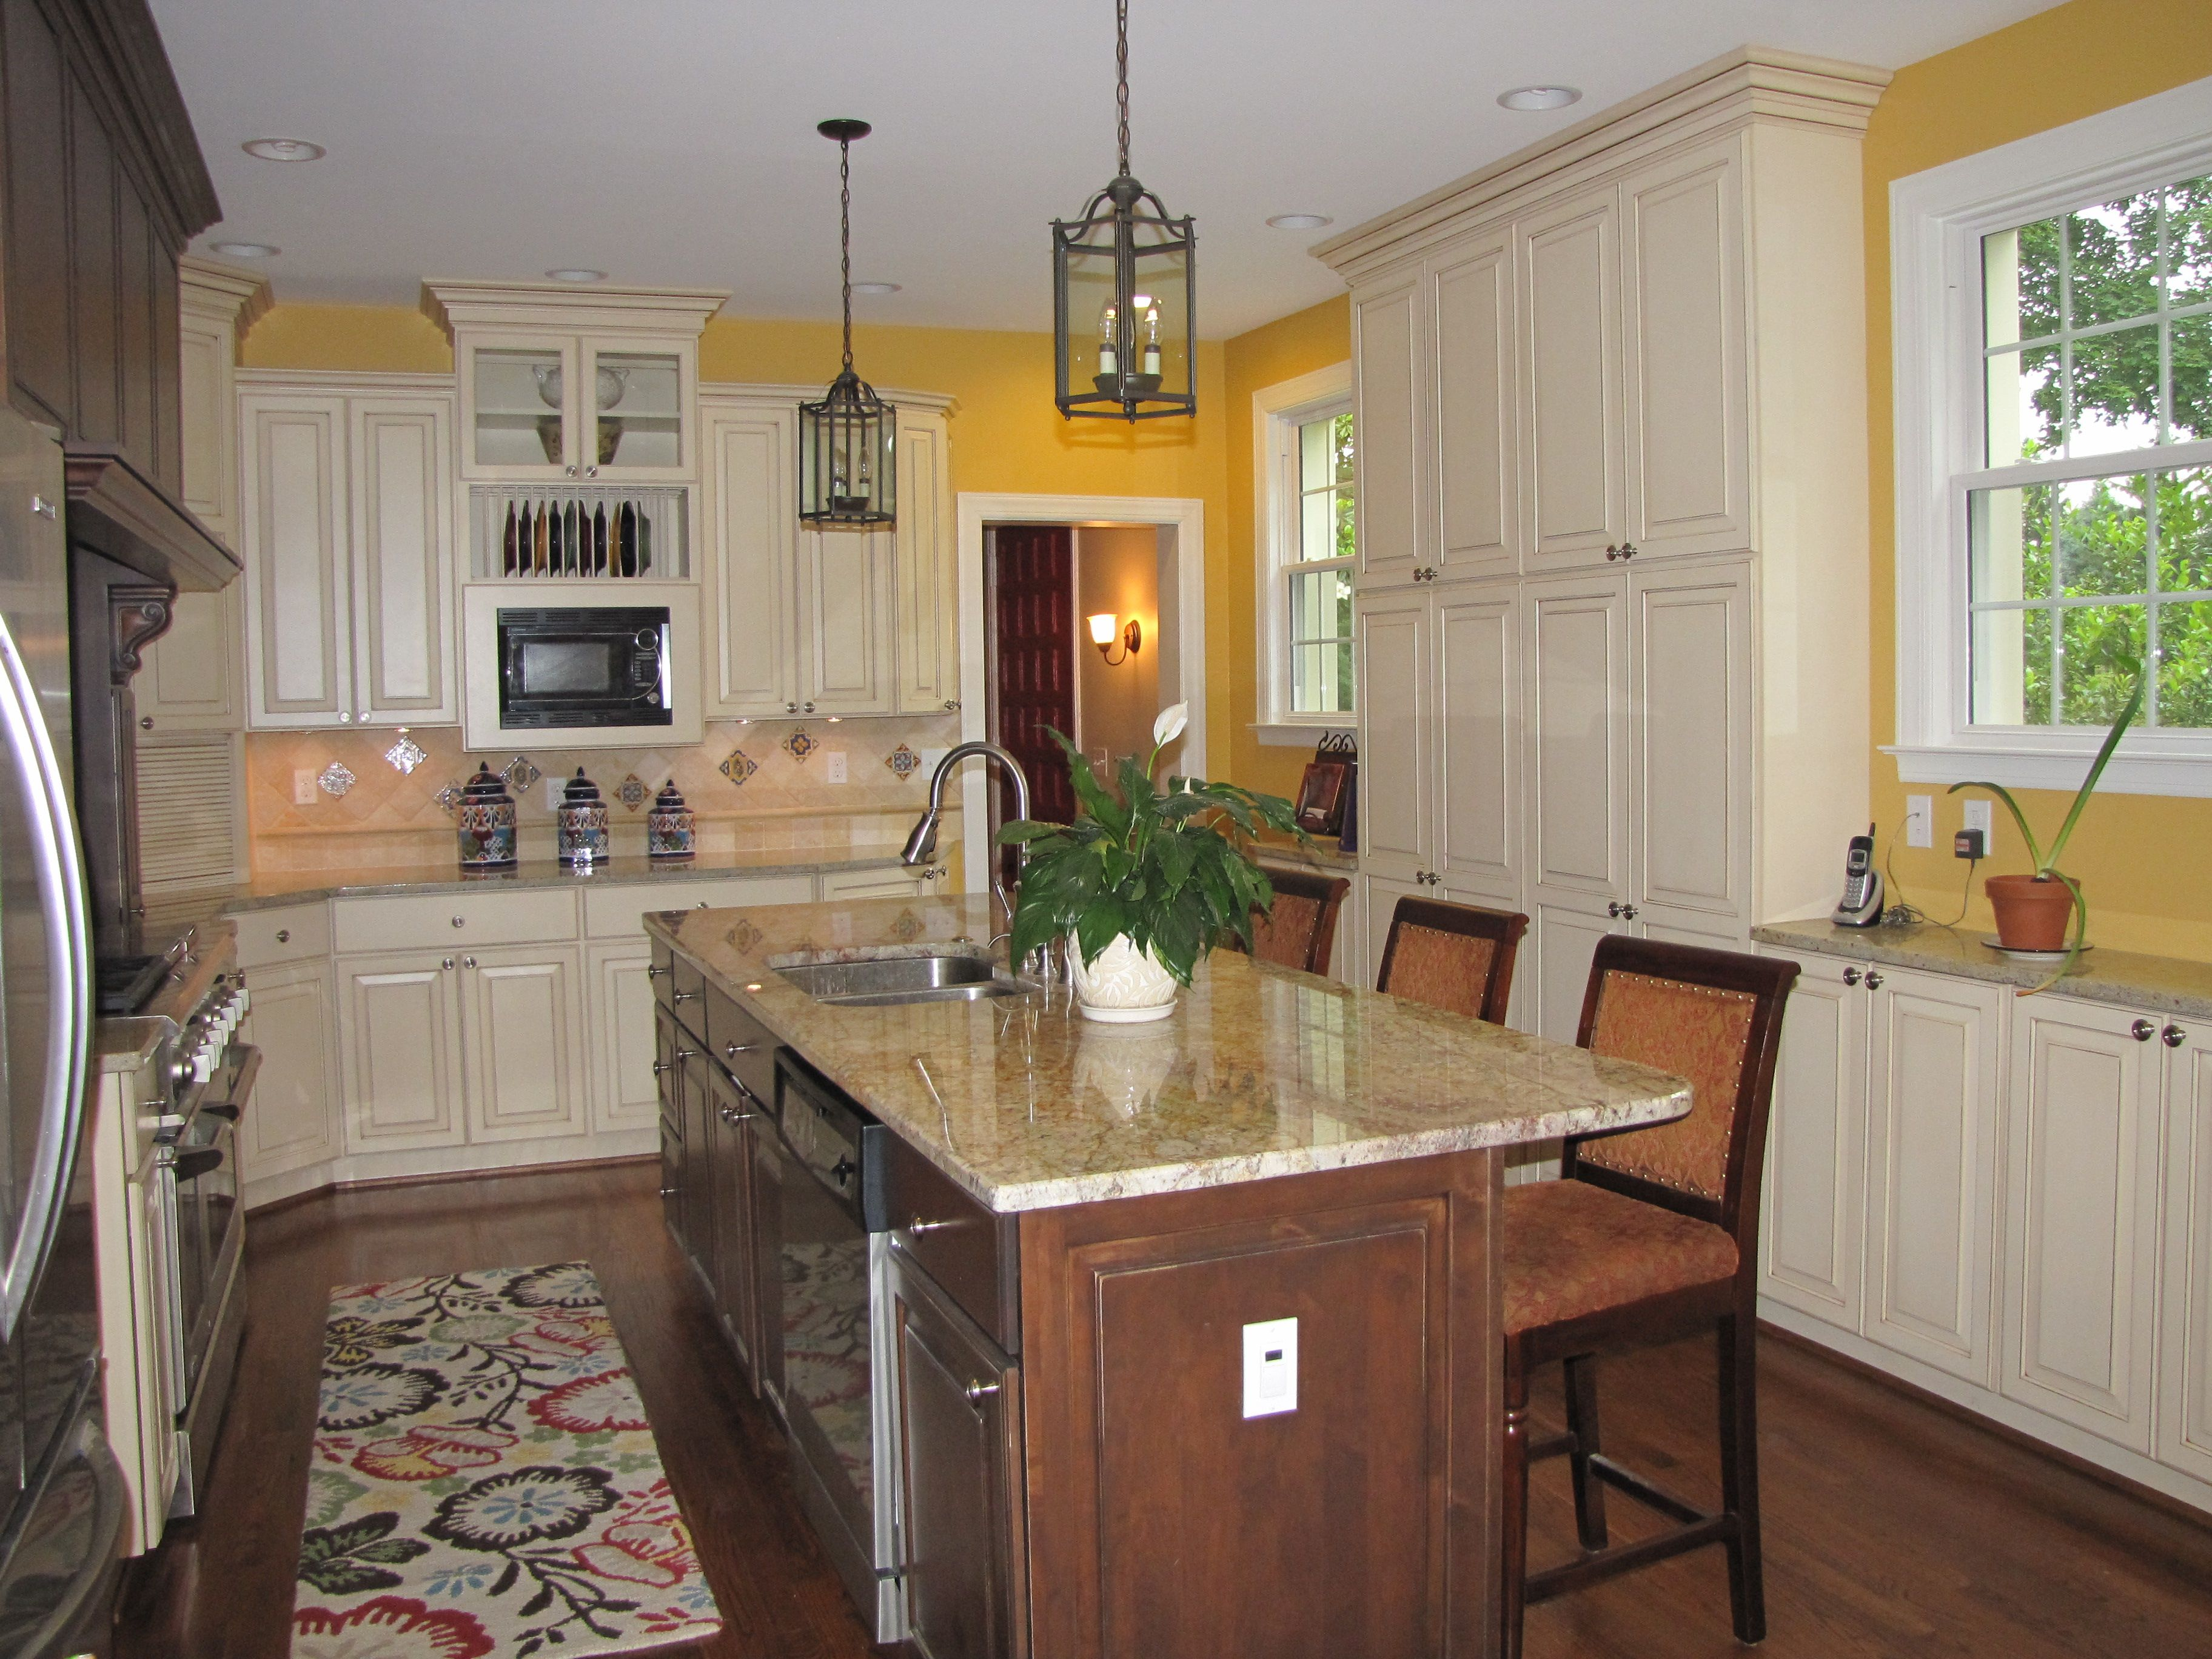 New Shallow Kitchen Wall Cabinets